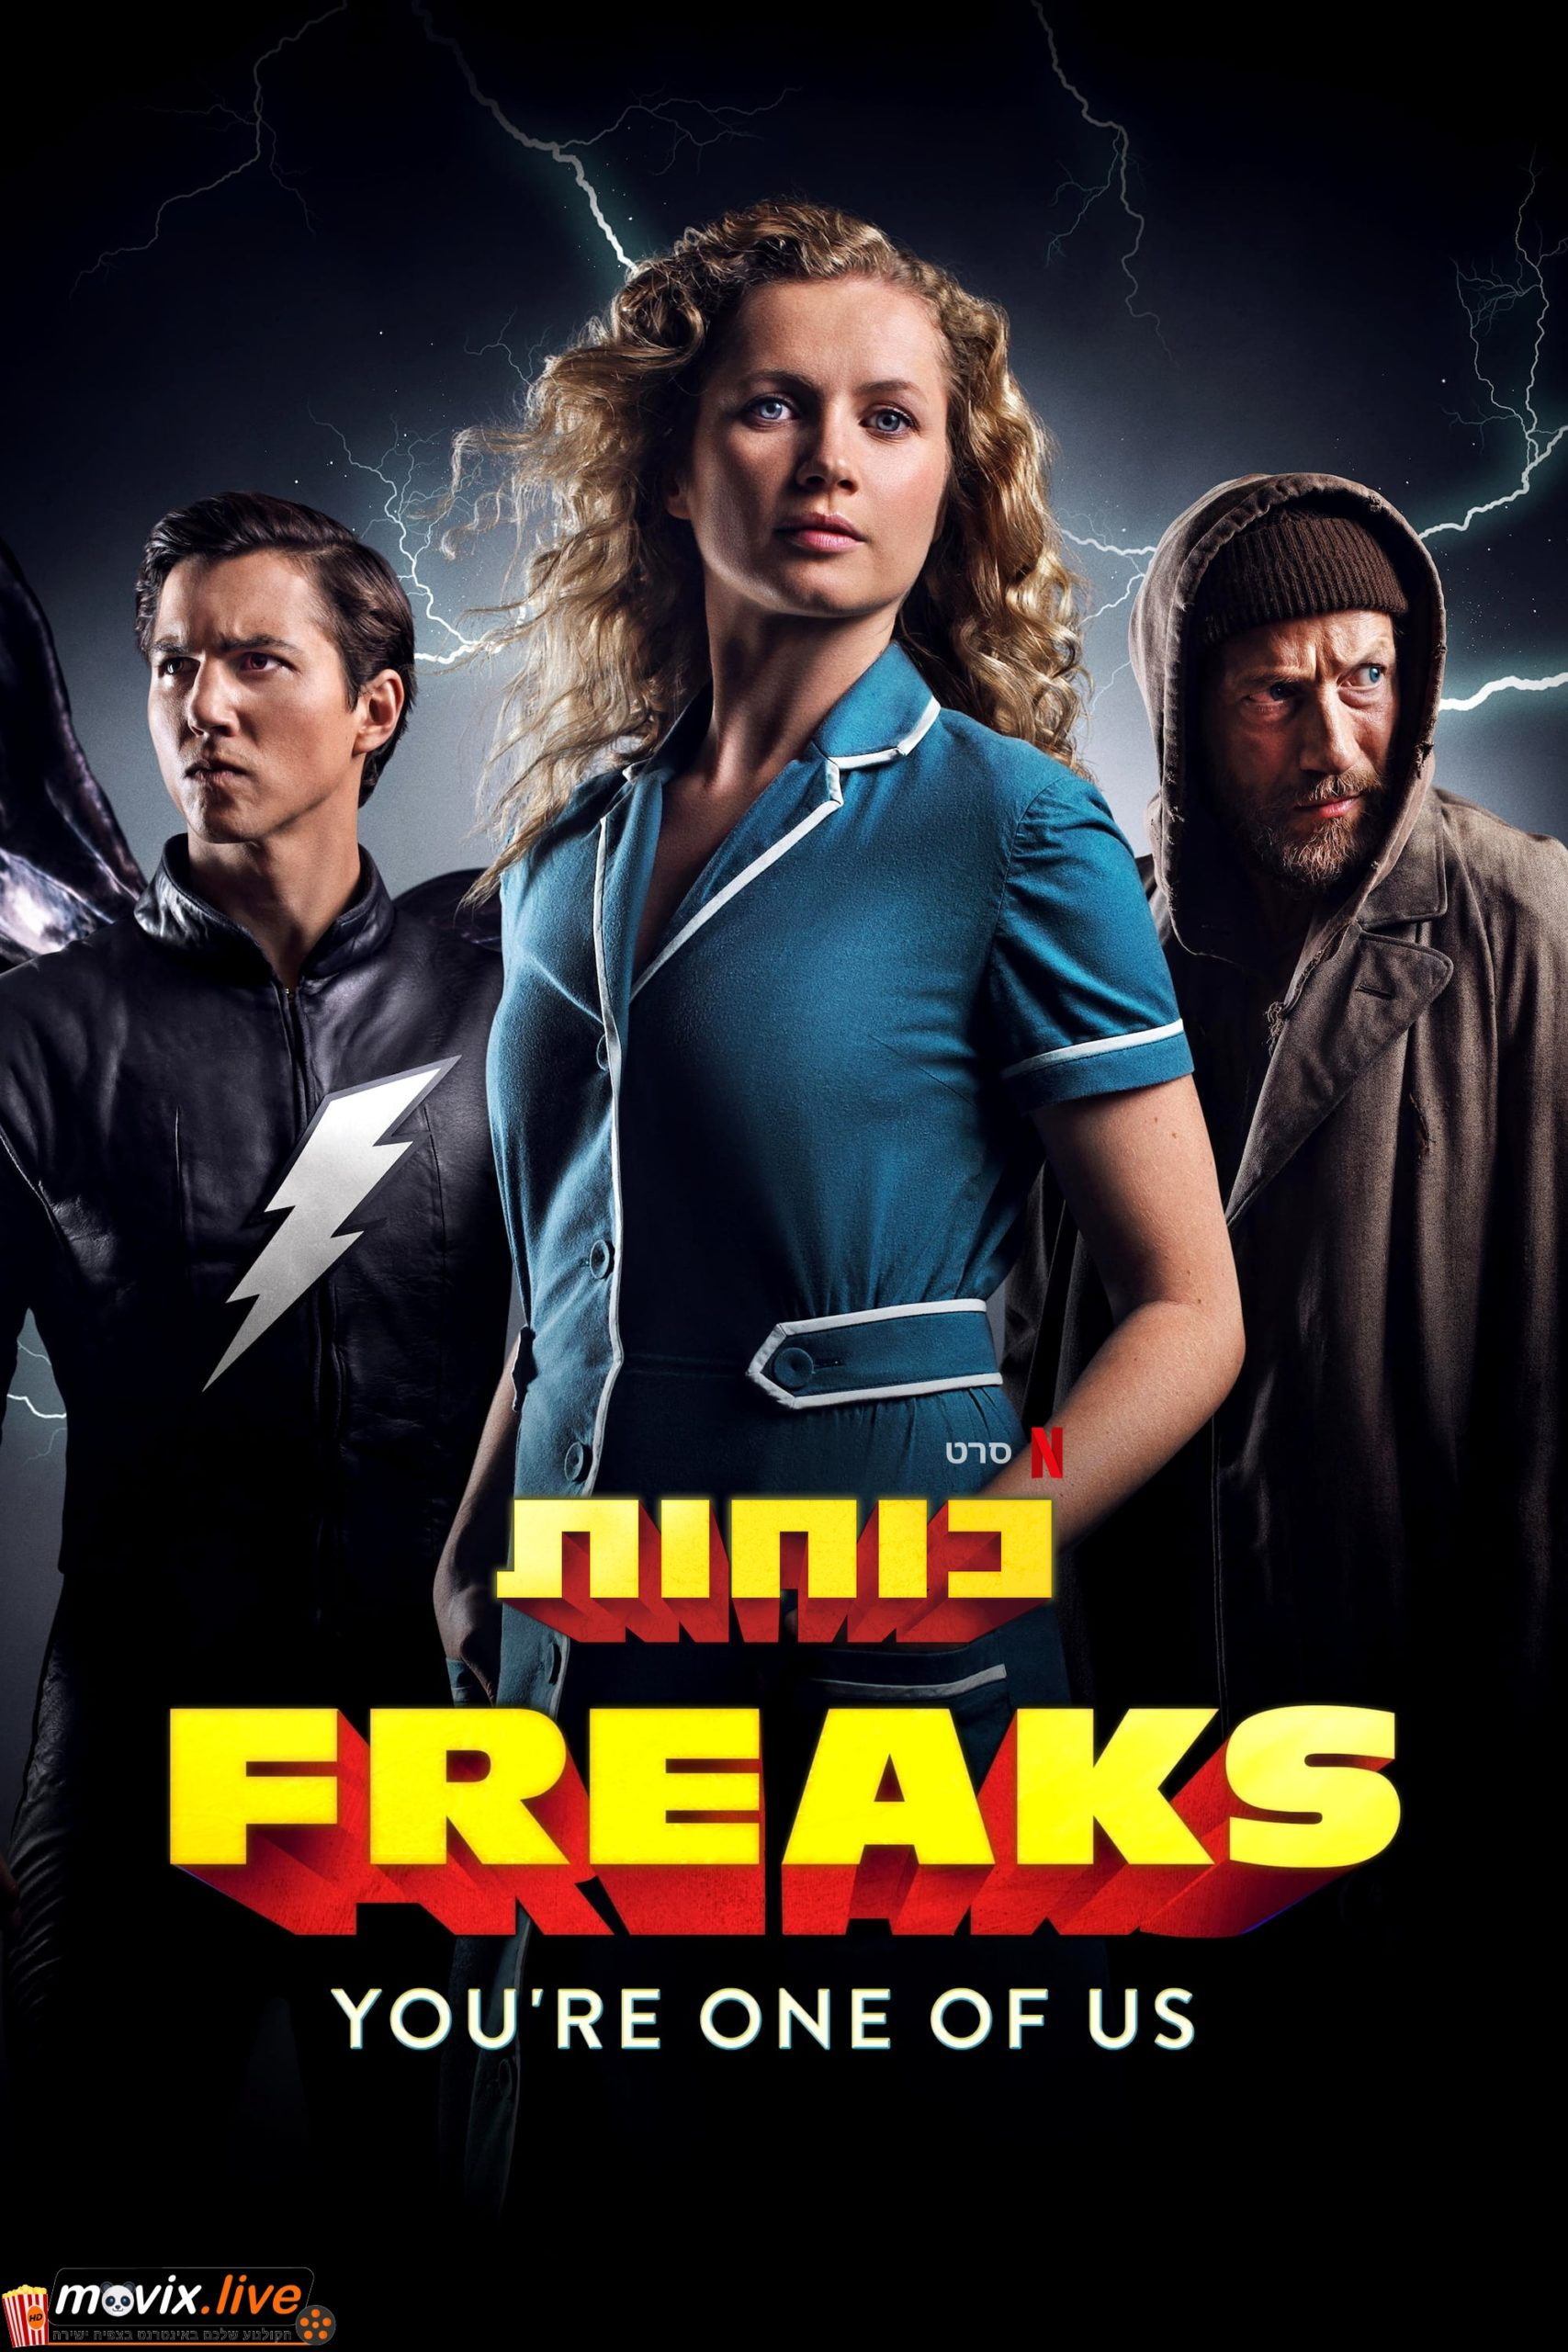 Freaks – You're One of Us